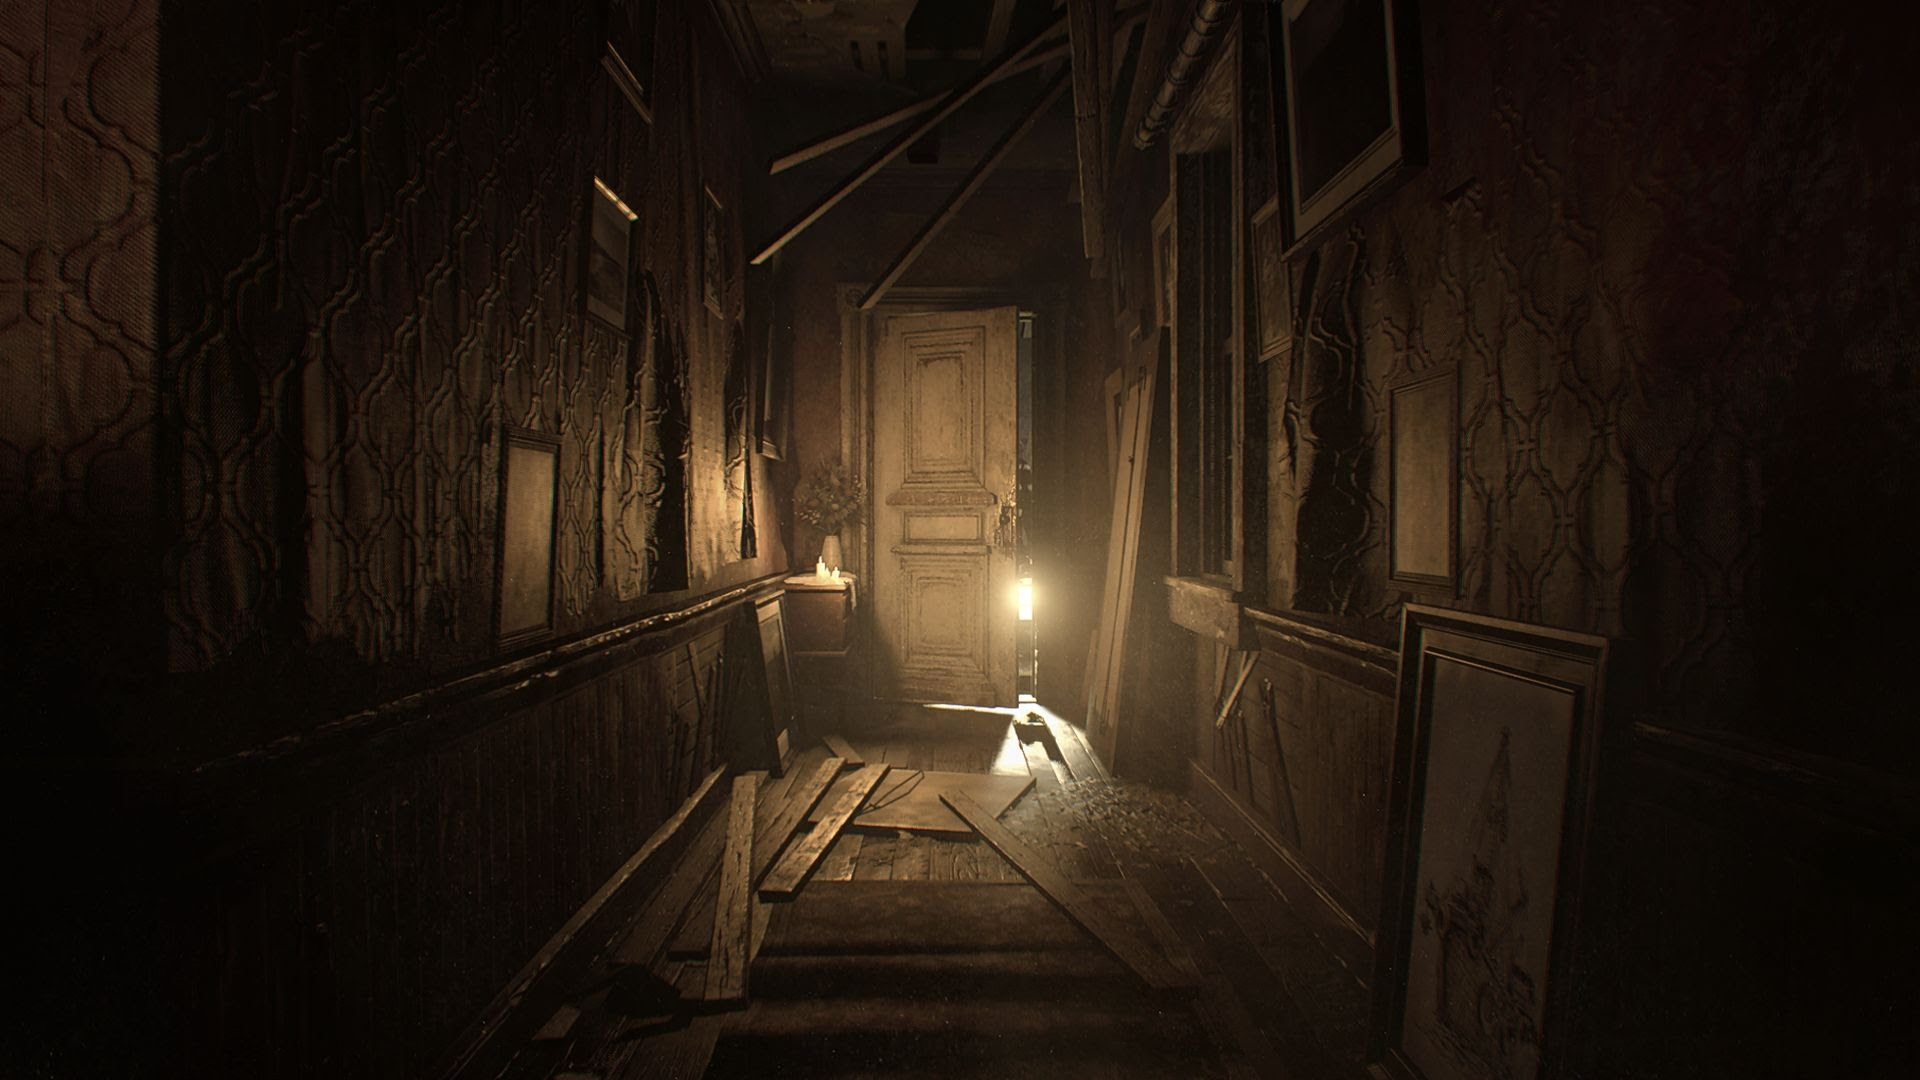 39 Resident Evil 7 39 180 Edition Comes With A Tiny Haunted House